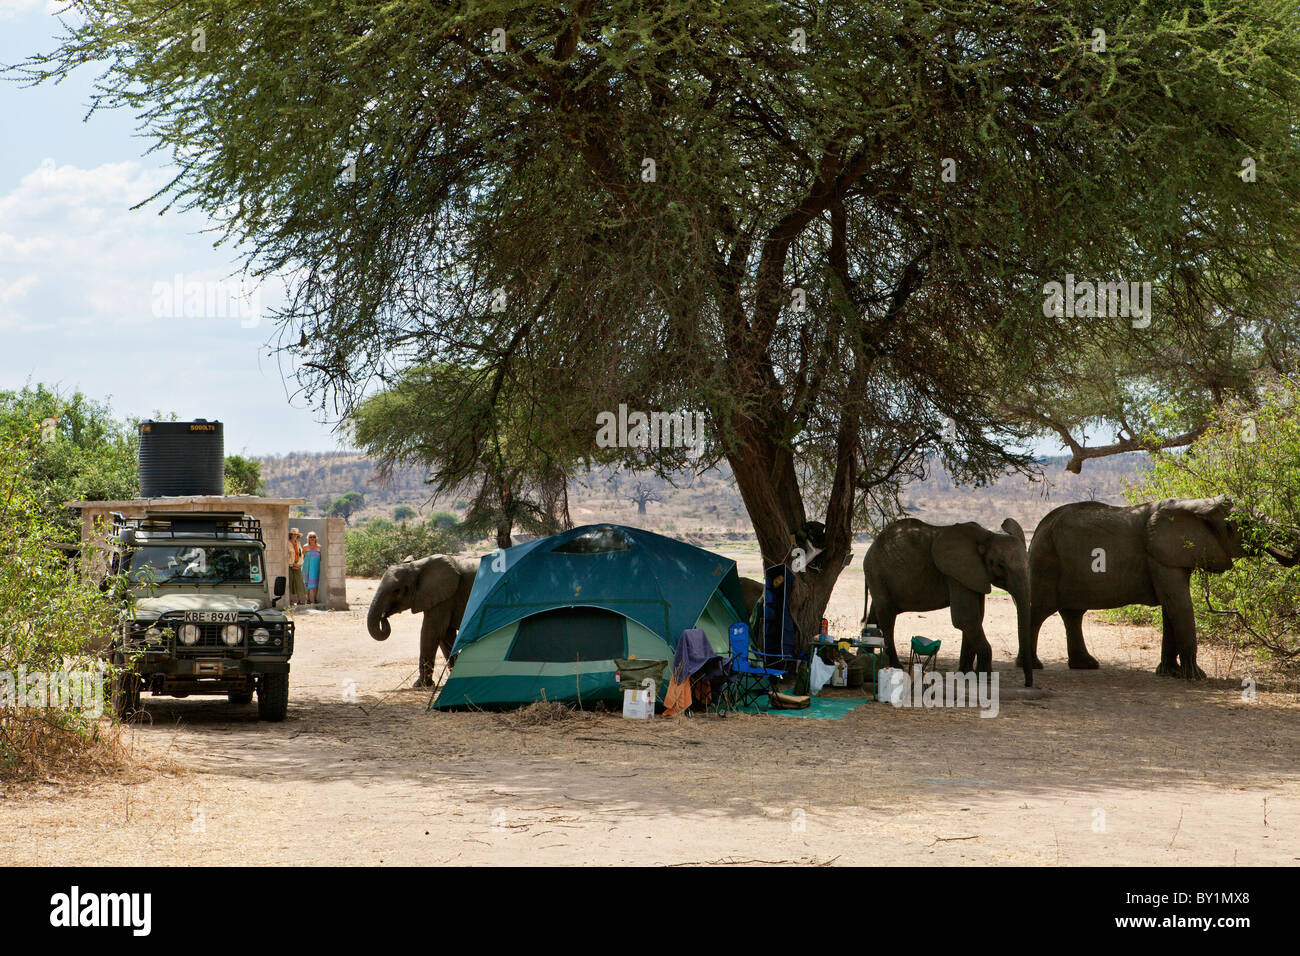 Elephants visit a campsite in Ruaha National Park, approaching too close for comfort! - Stock Image